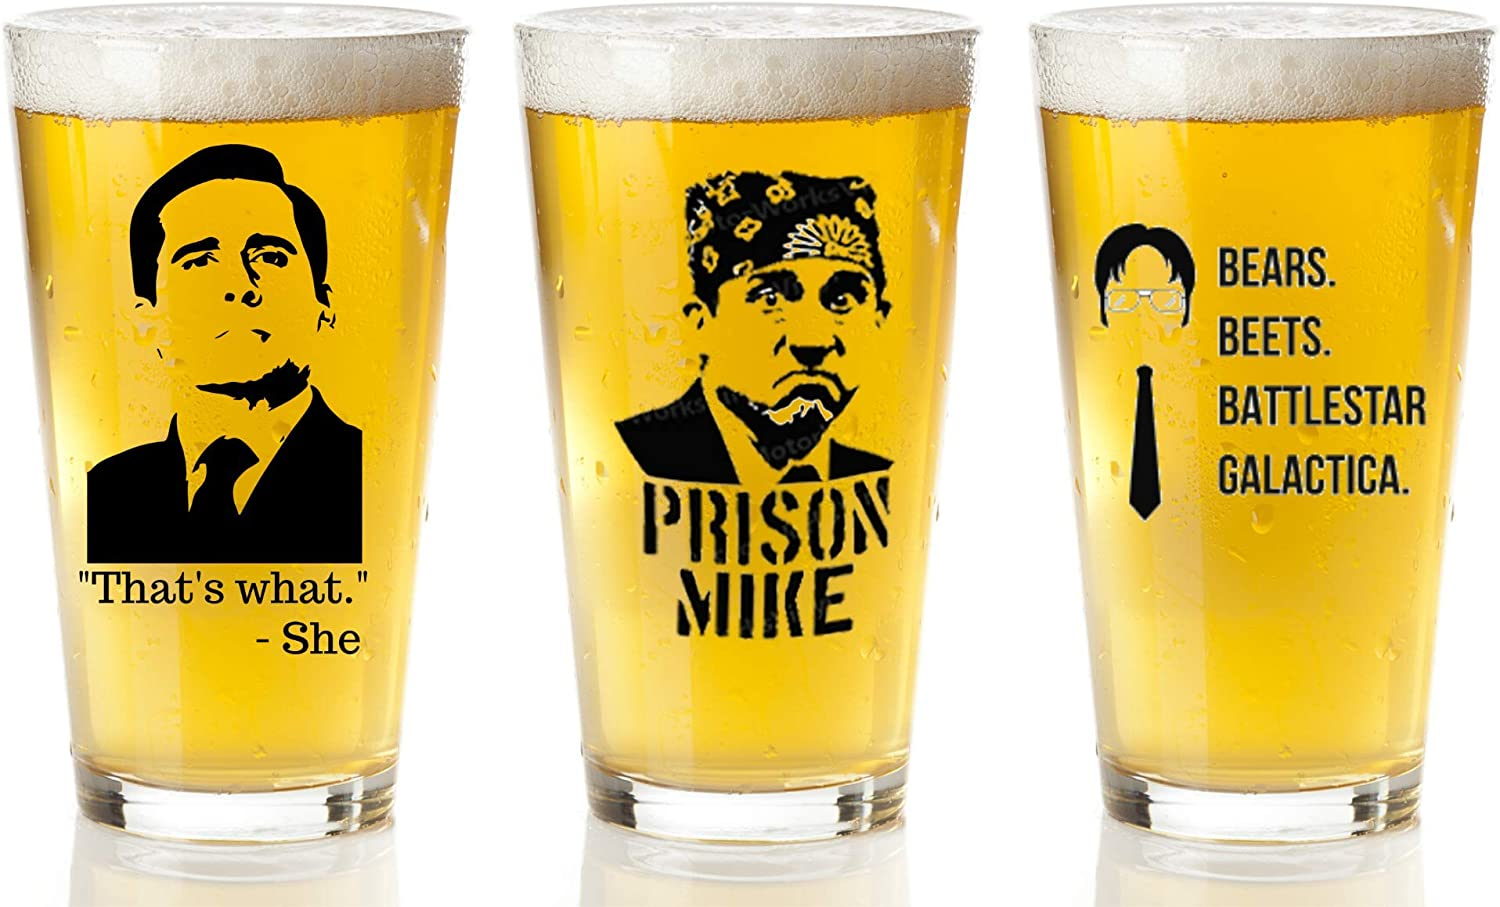 The Office Merchandise 3-Pack beer Glasses Set - That's What She Said, Prison Mike, Bears Beets Battlestar Galactica